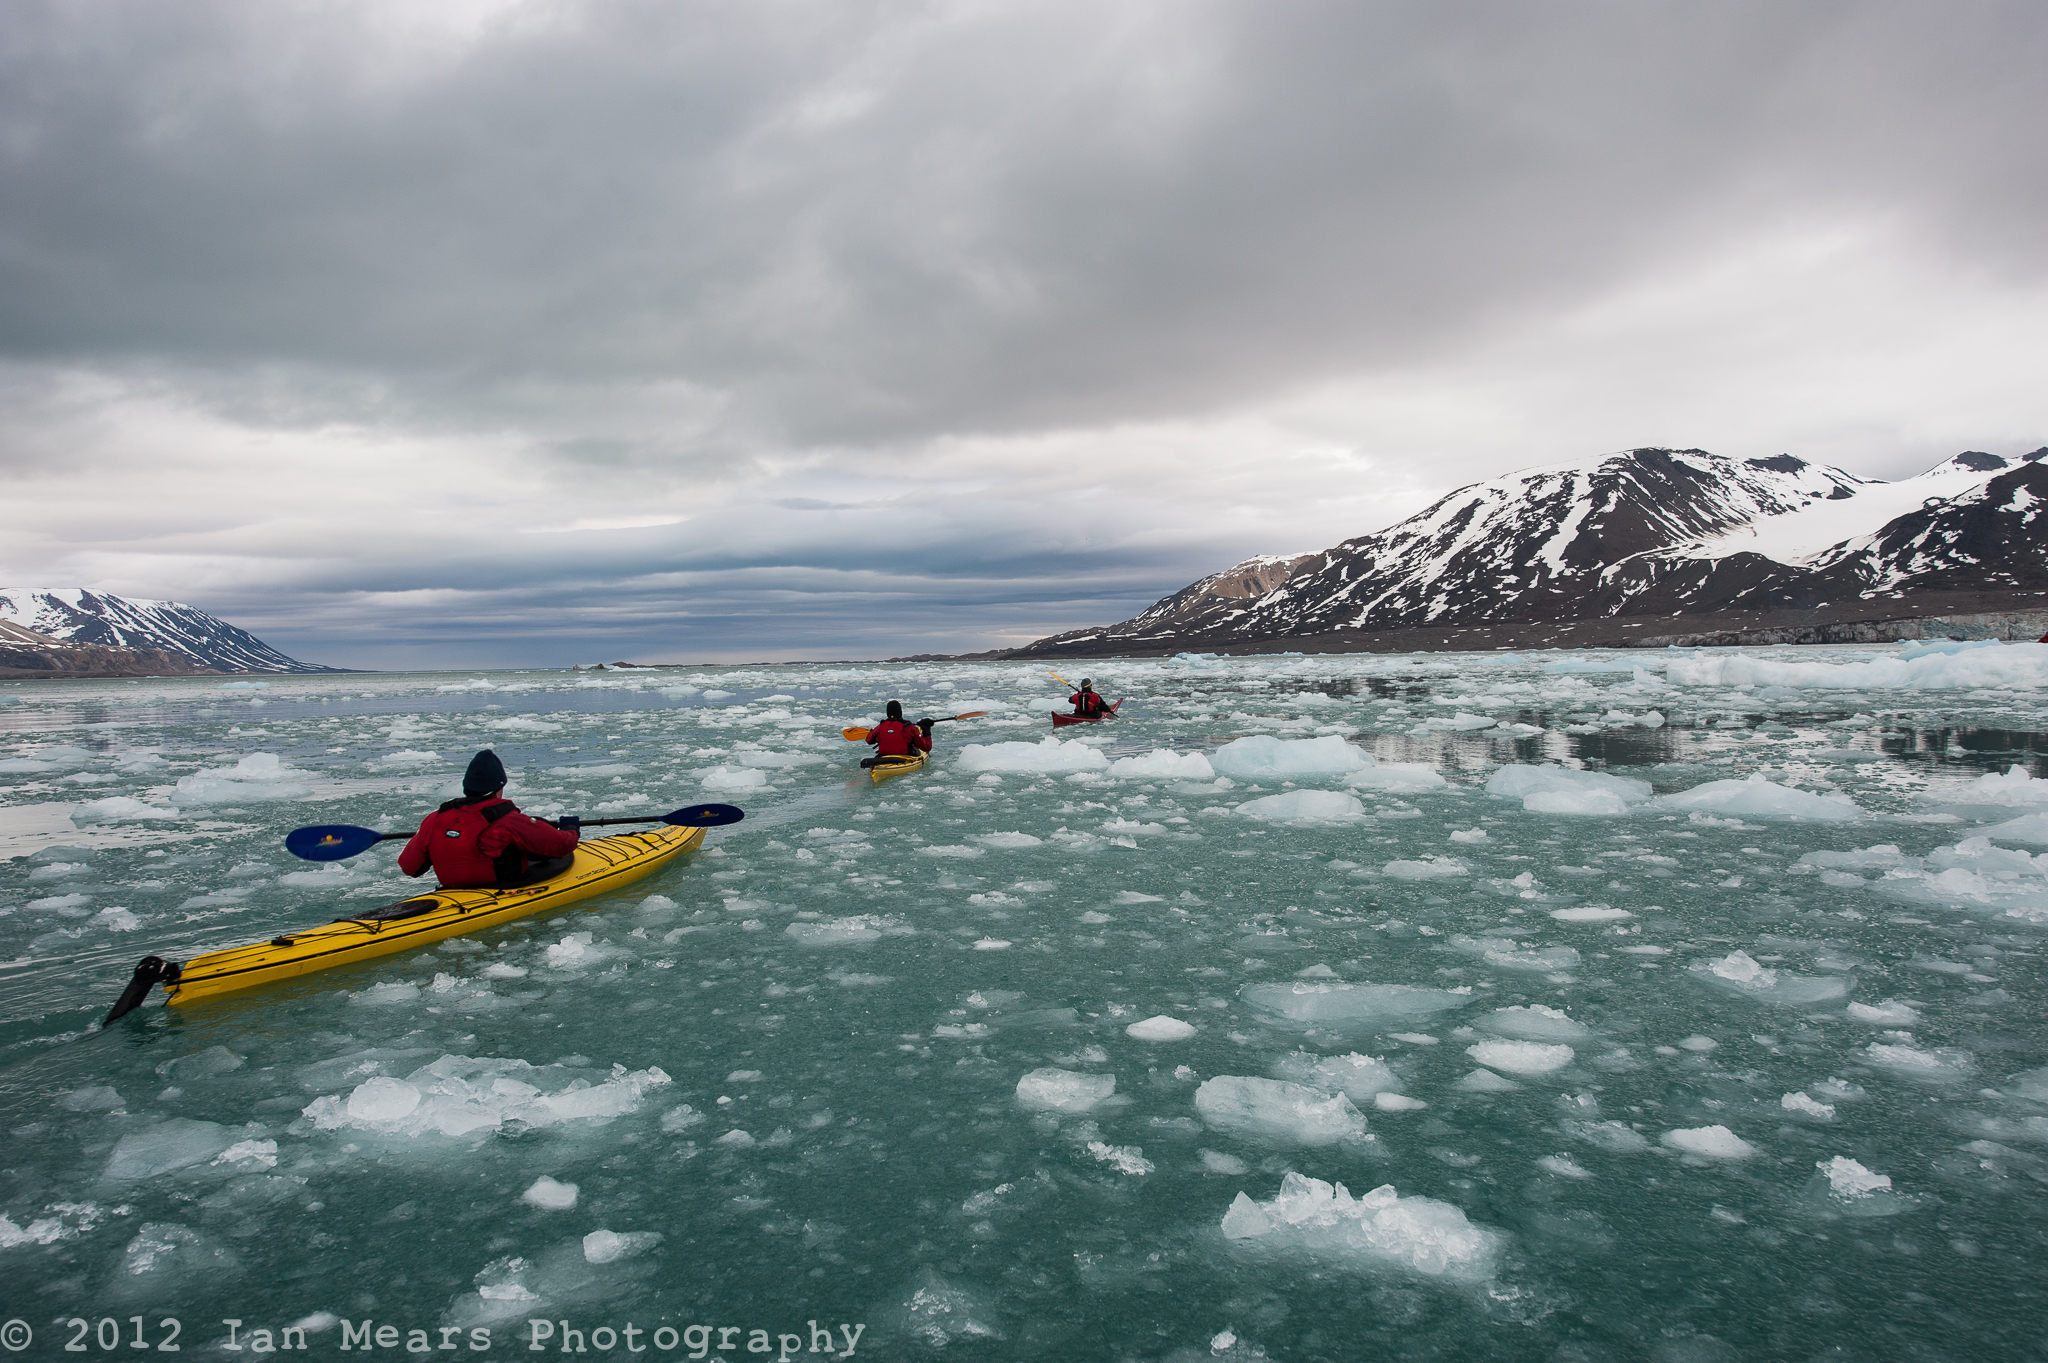 Photograph Crazy Kayakers! by Ian Mears on 500px